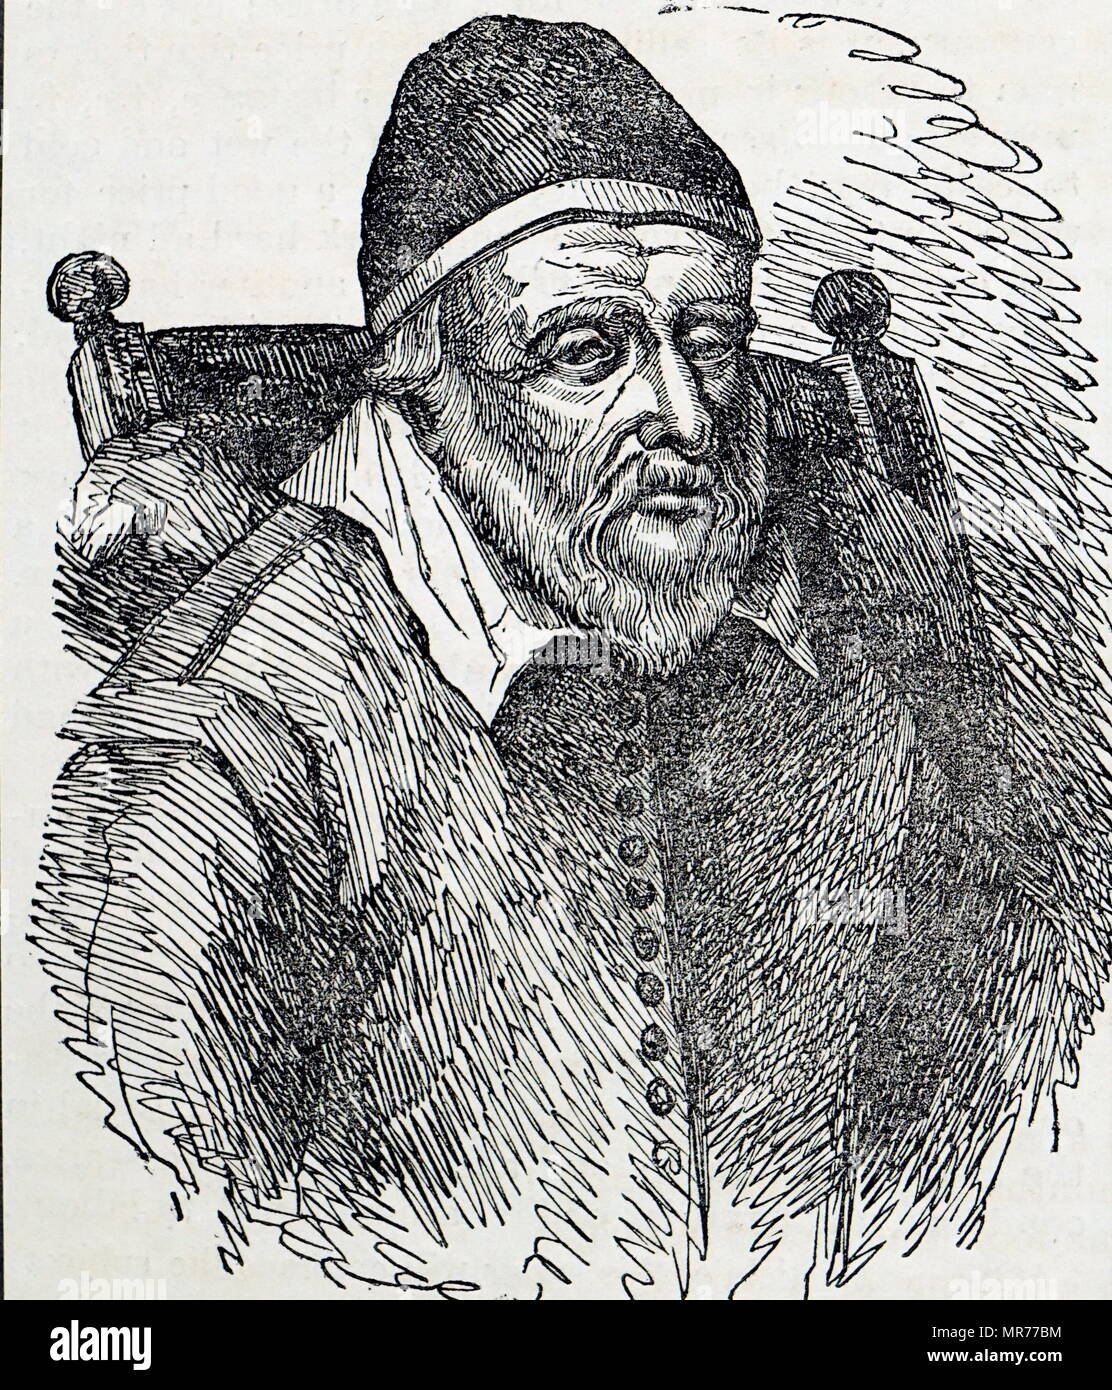 Engraving depicting Old Tom Parr (1483-1635) an Englishman who was said to have lived for 152 years. Dated 19th century - Stock Image